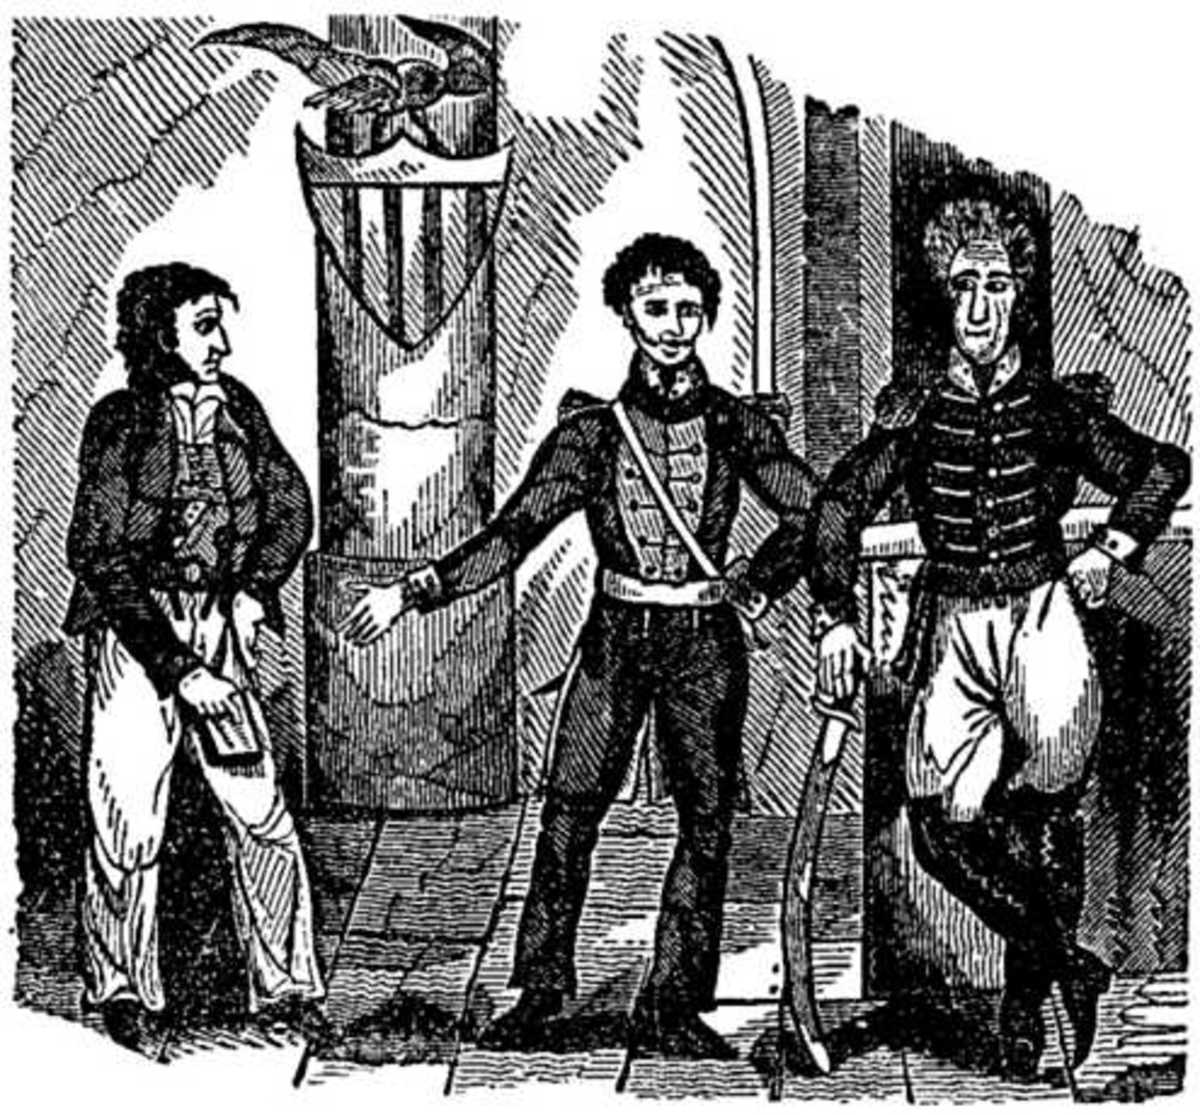 Twenty years after the event, an engraver imagines a meeting among (left to right) Jean Lafitte, Louisiana Governor William Claiborne, and General Andrew Jackson.